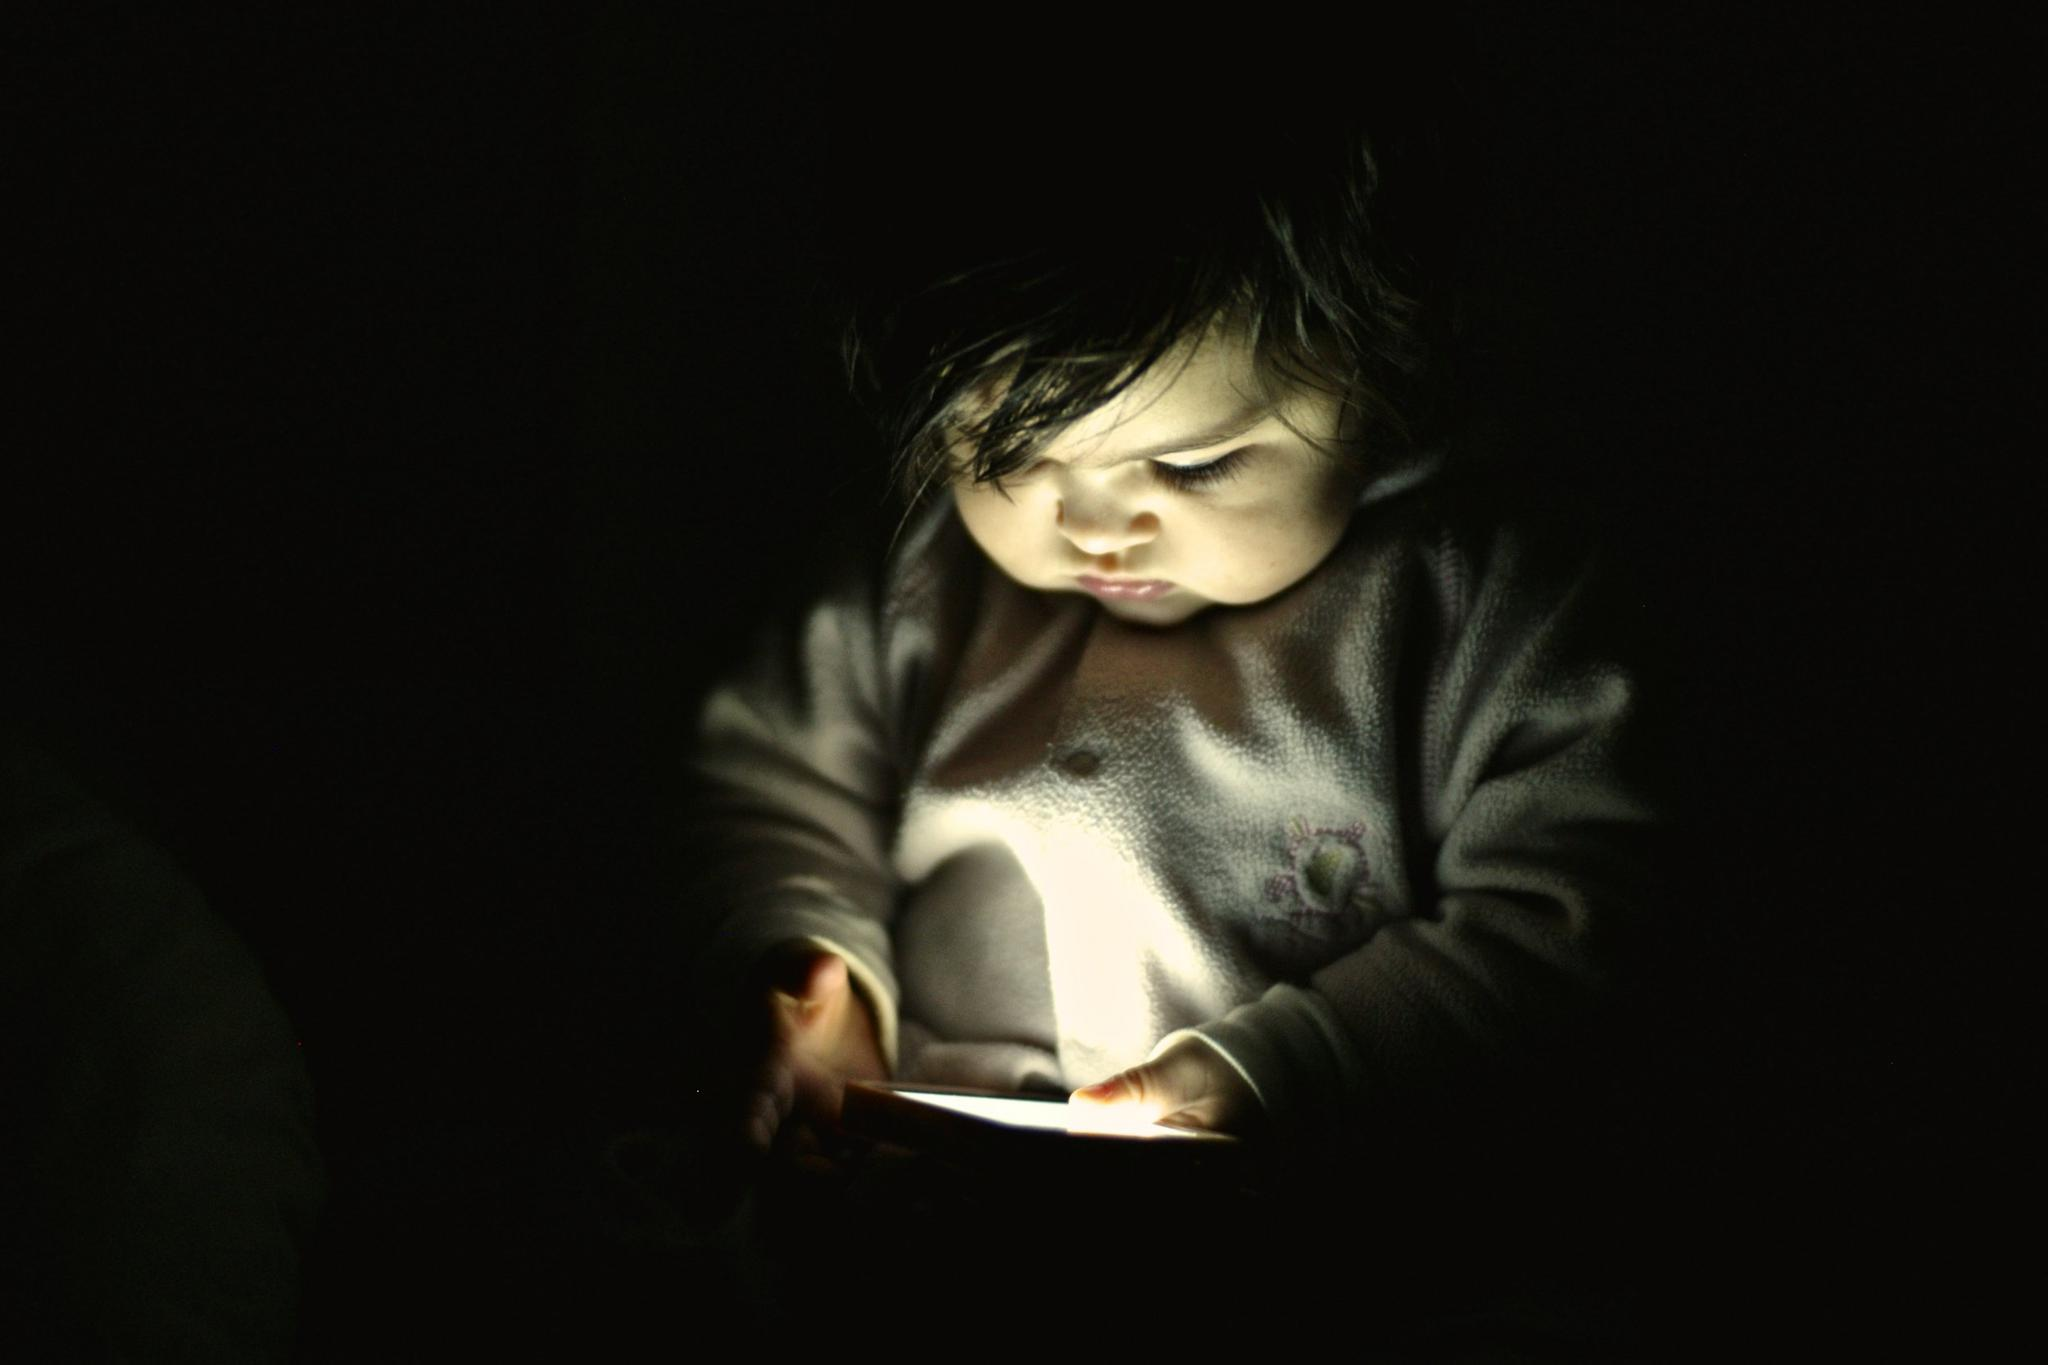 A 10-month-old baby girl looks at a smartphone screen in a dark room. Researchers found a correlation between toddlers who had half an hour per day of smartphone exposure with those who began talking later.